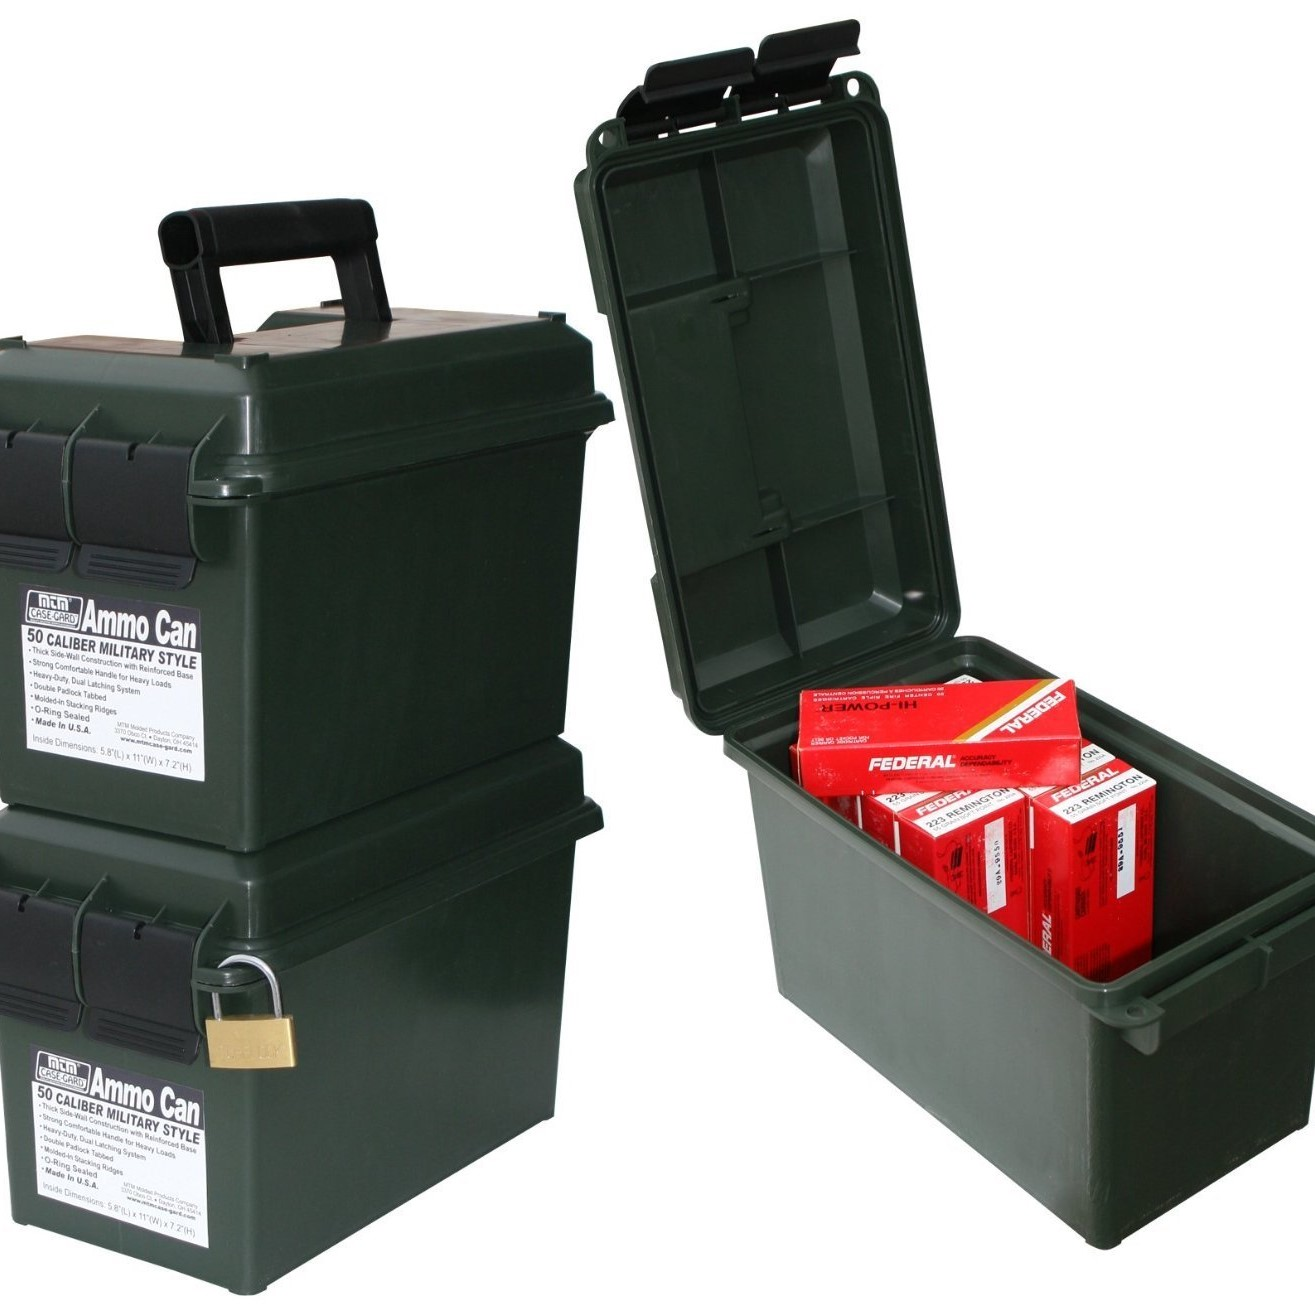 MTM 50 Caliber Ammo Can